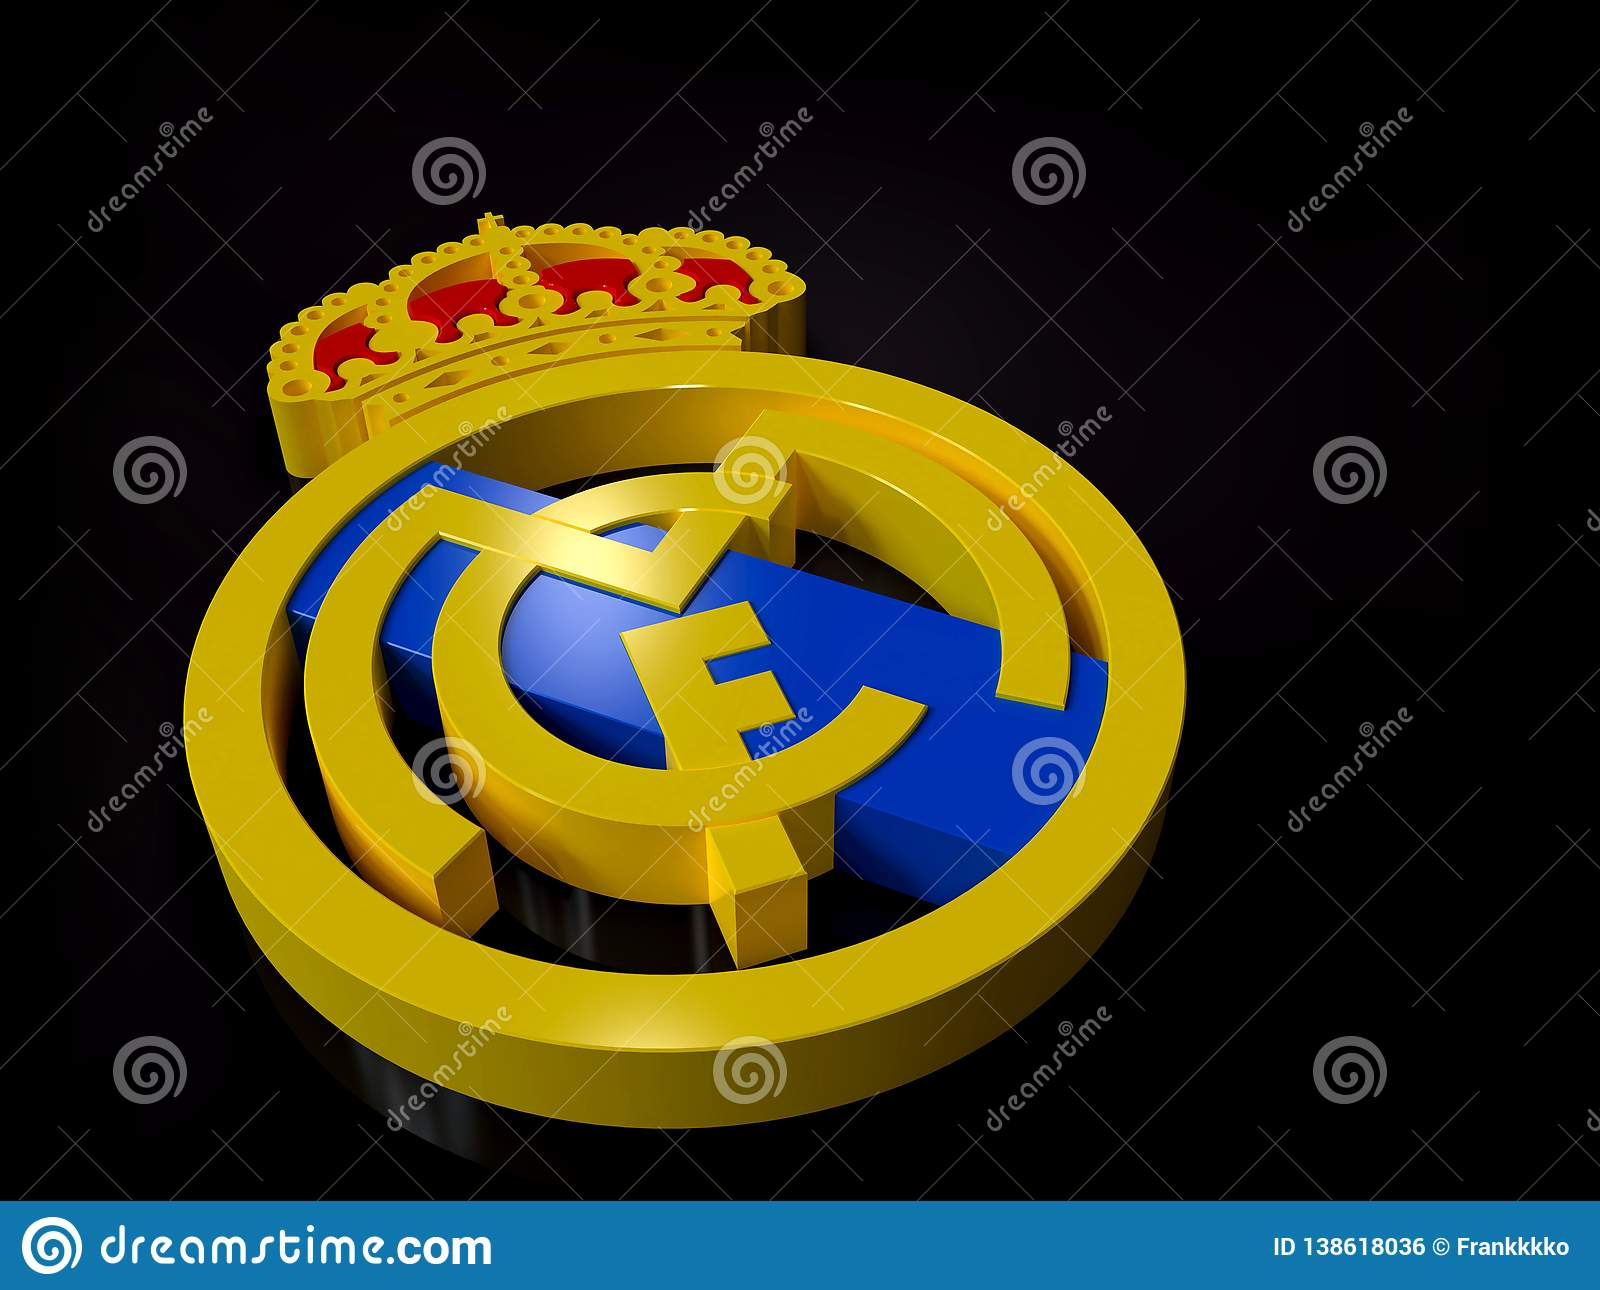 Real Madrid Football Club Logo 3D Perspective Editorial